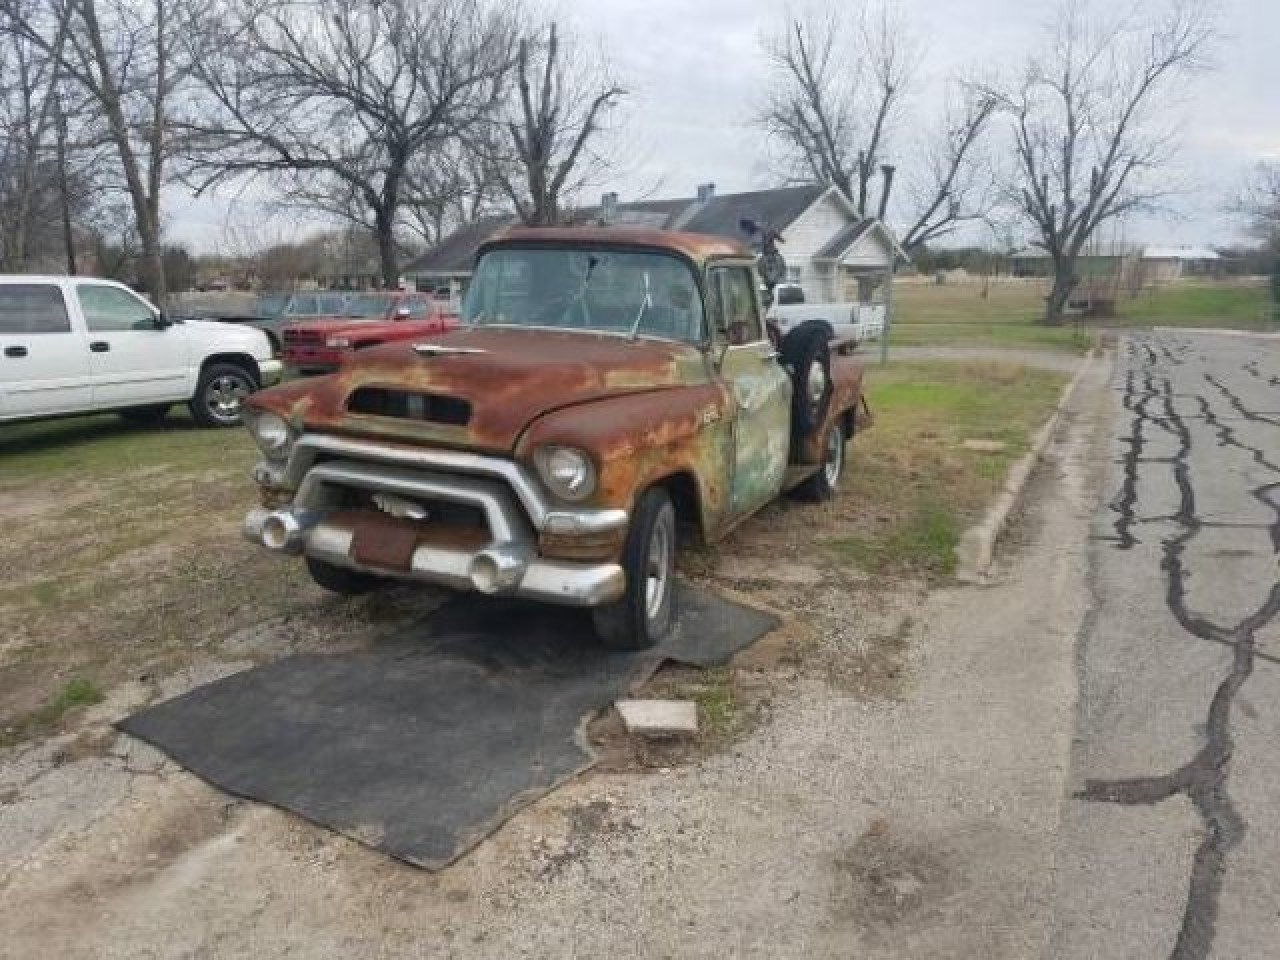 1955 Dodge Truck For Sale >> 1955 GMC Pickup for sale near Cadillac, Michigan 49601 - Classics on Autotrader